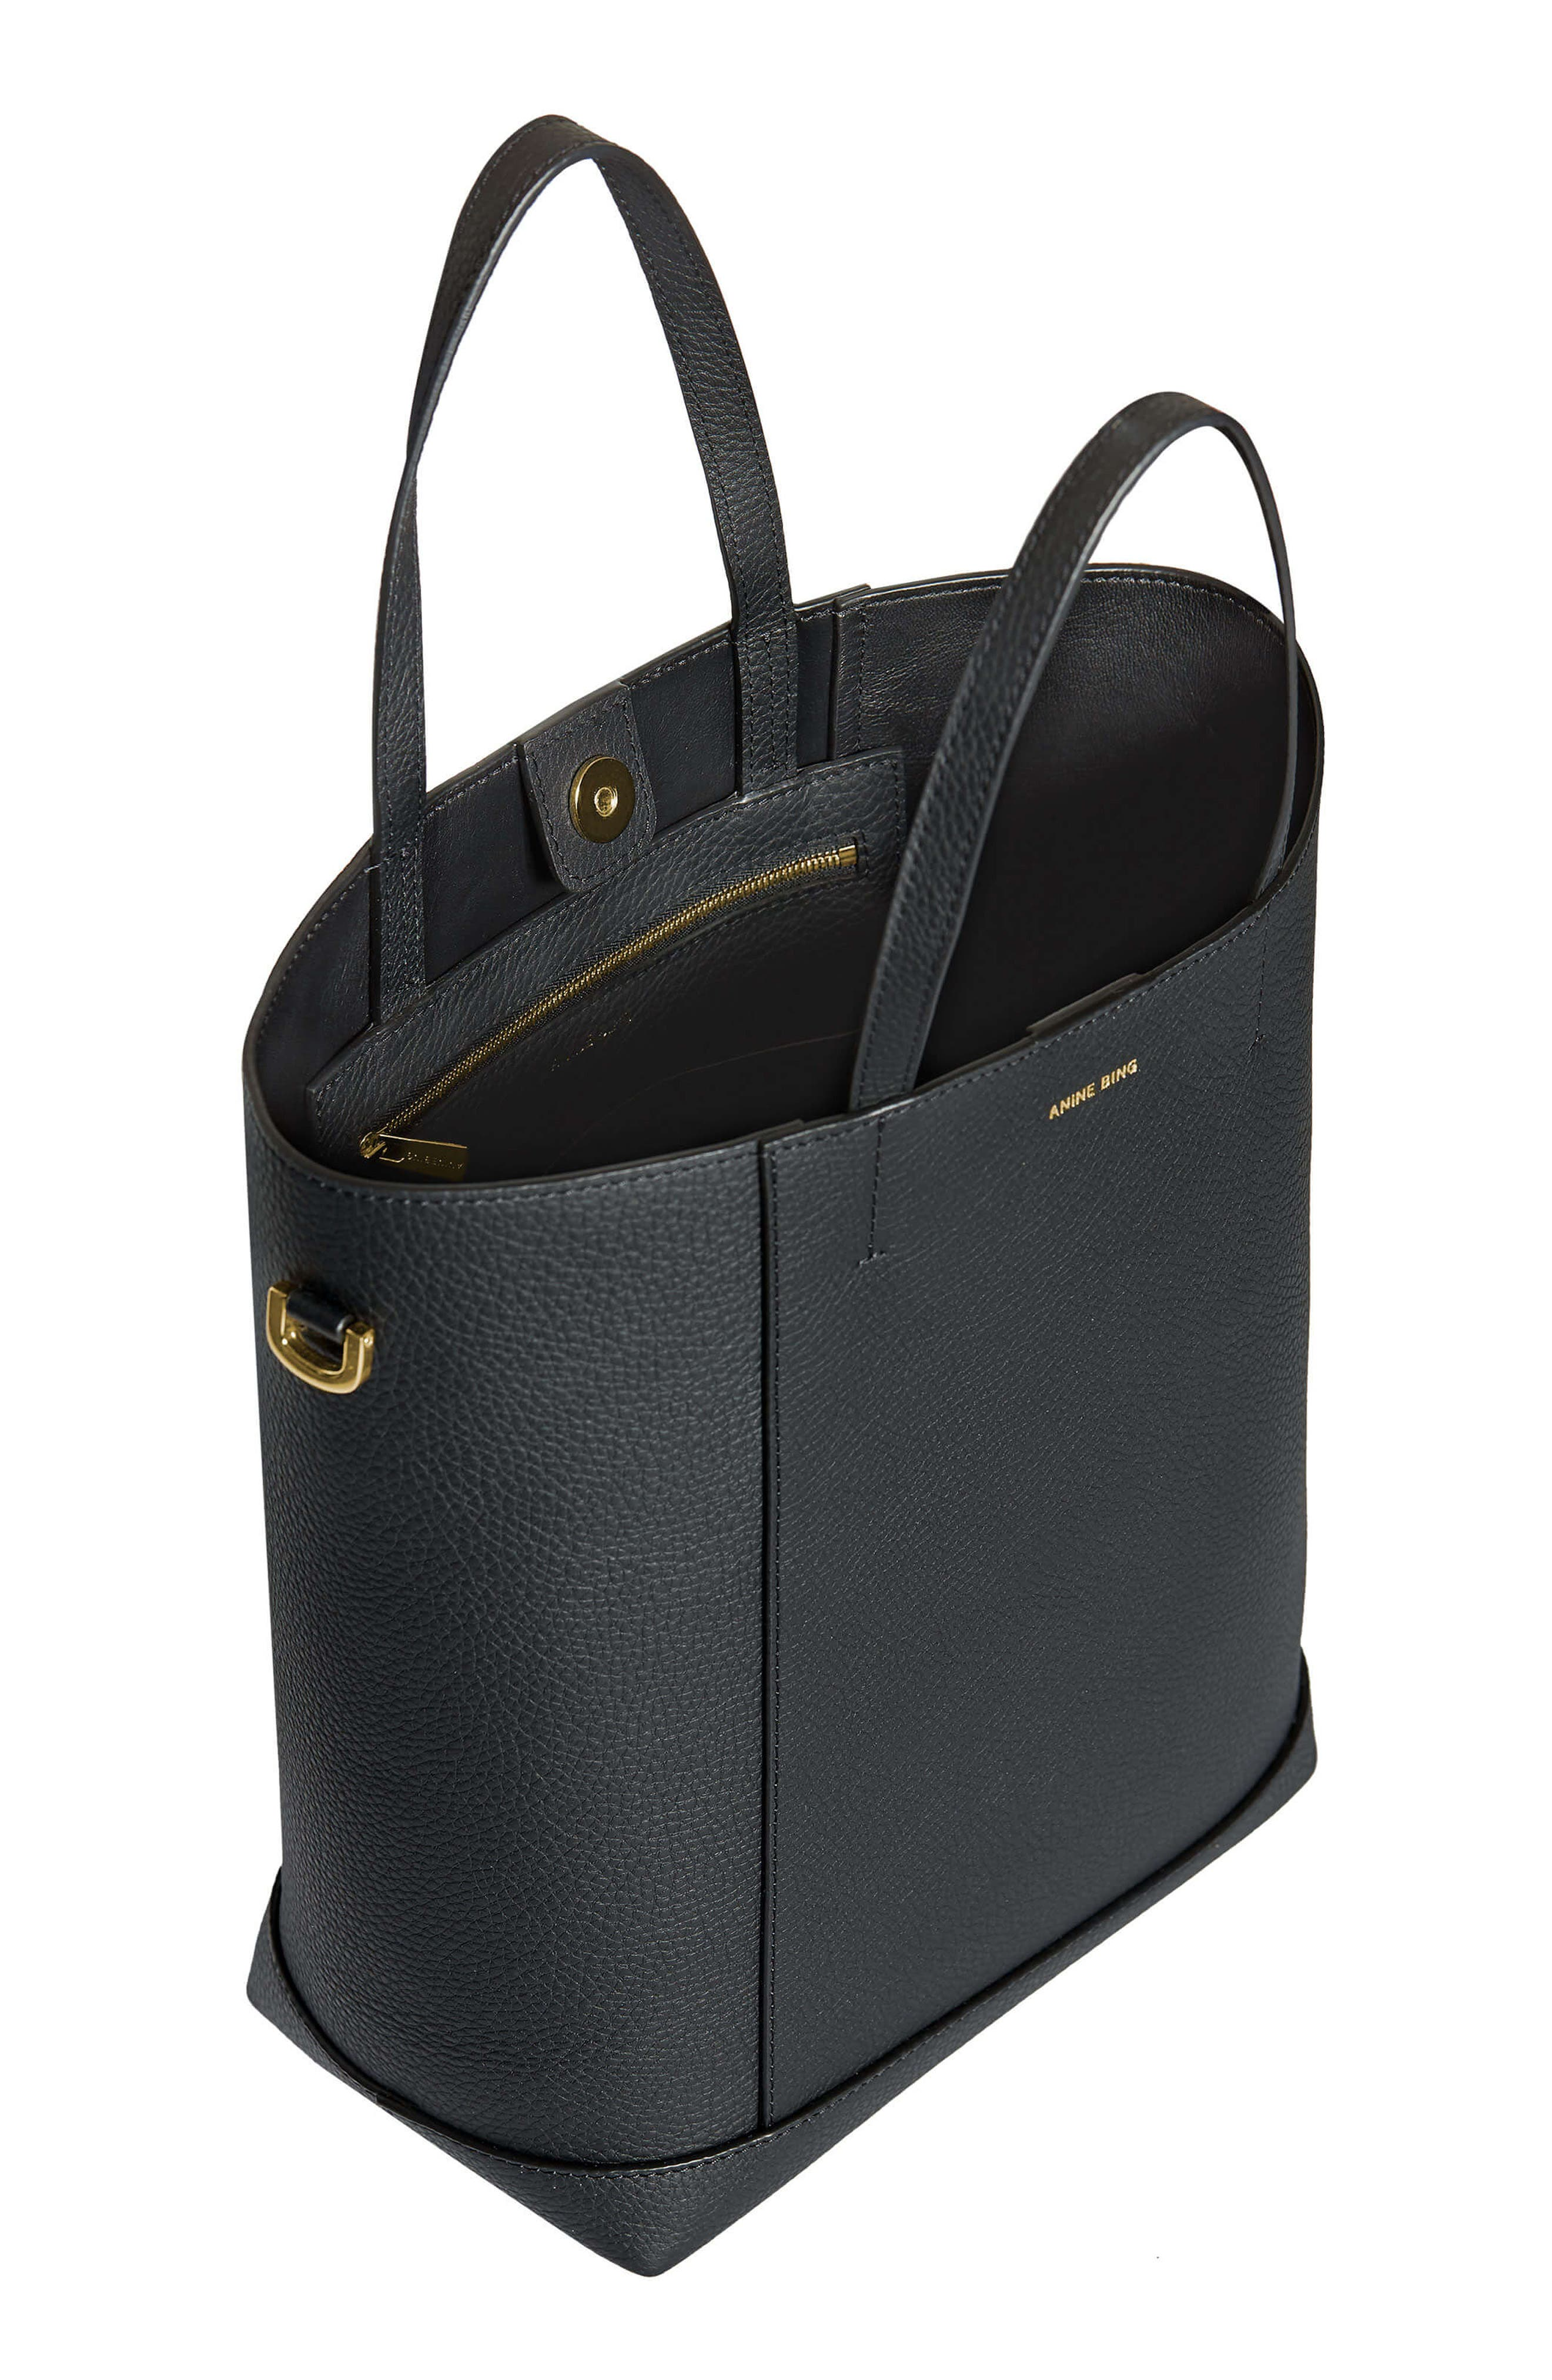 Lyon Water Repellent Leather Tote,                             Alternate thumbnail 4, color,                             BLACK